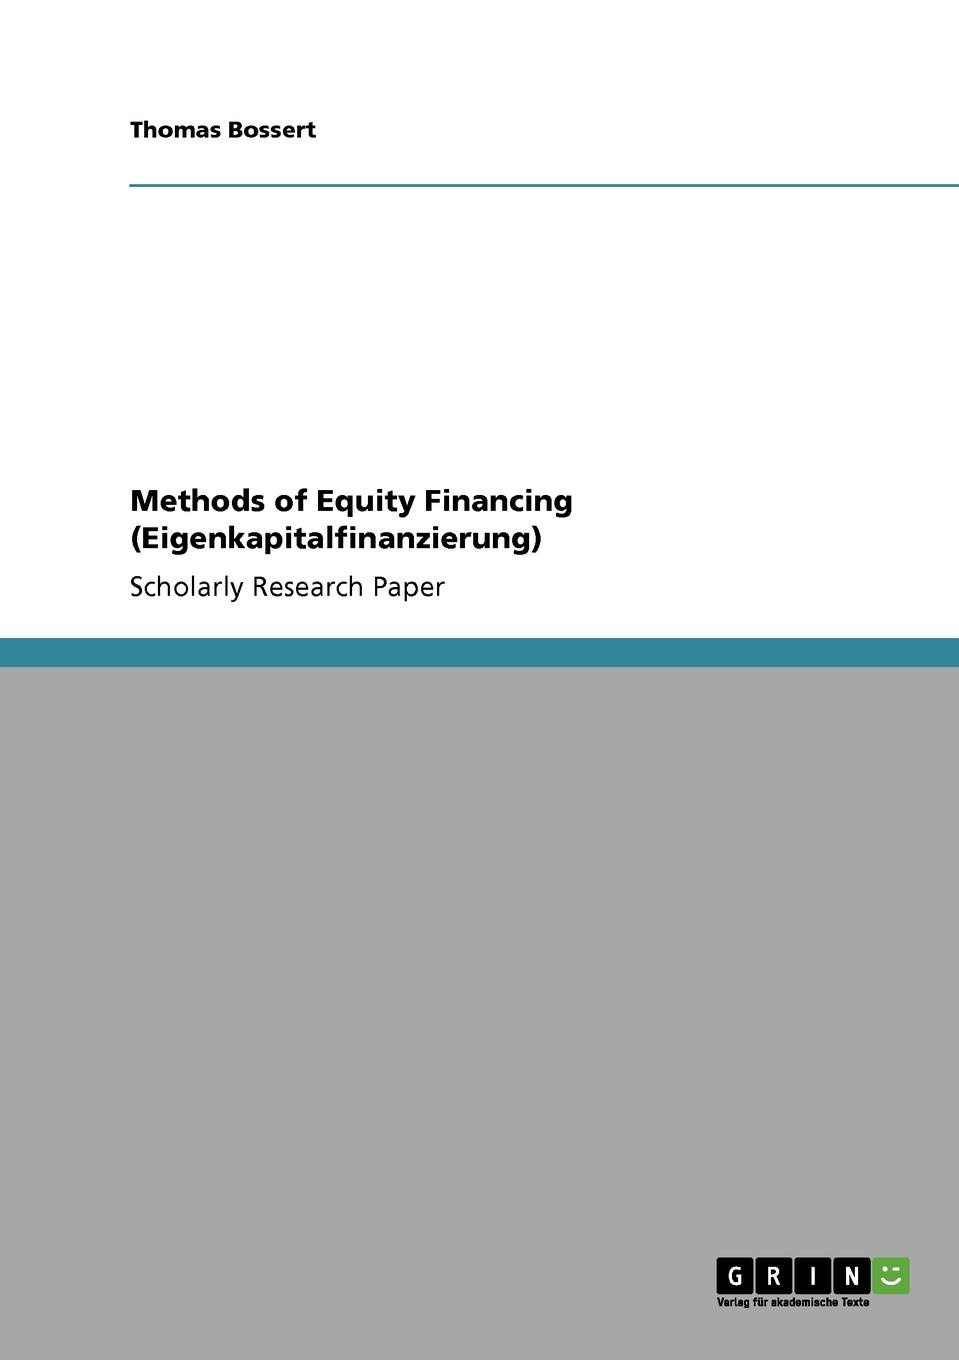 Thomas Bossert Methods of Equity Financing (Eigenkapitalfinanzierung) gerald s martin capital structure and corporate financing decisions theory evidence and practice